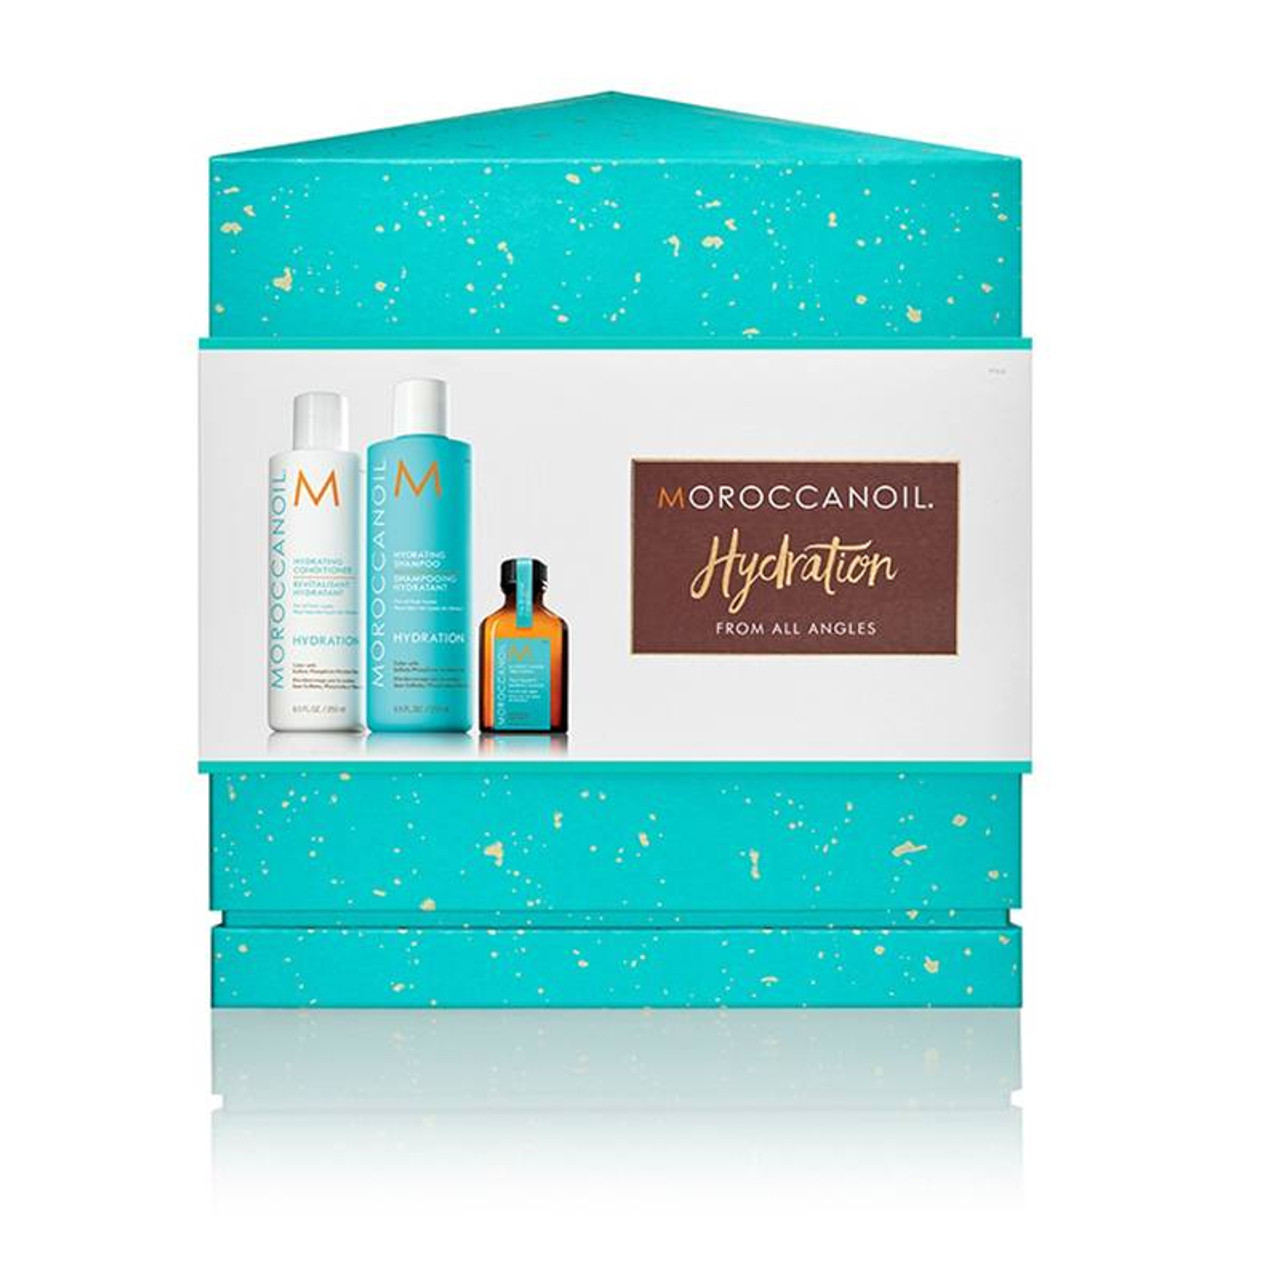 Christmas Gift Sets 2019.Moroccanoil Hydration 2019 Xmas Gift Set Limited Edition